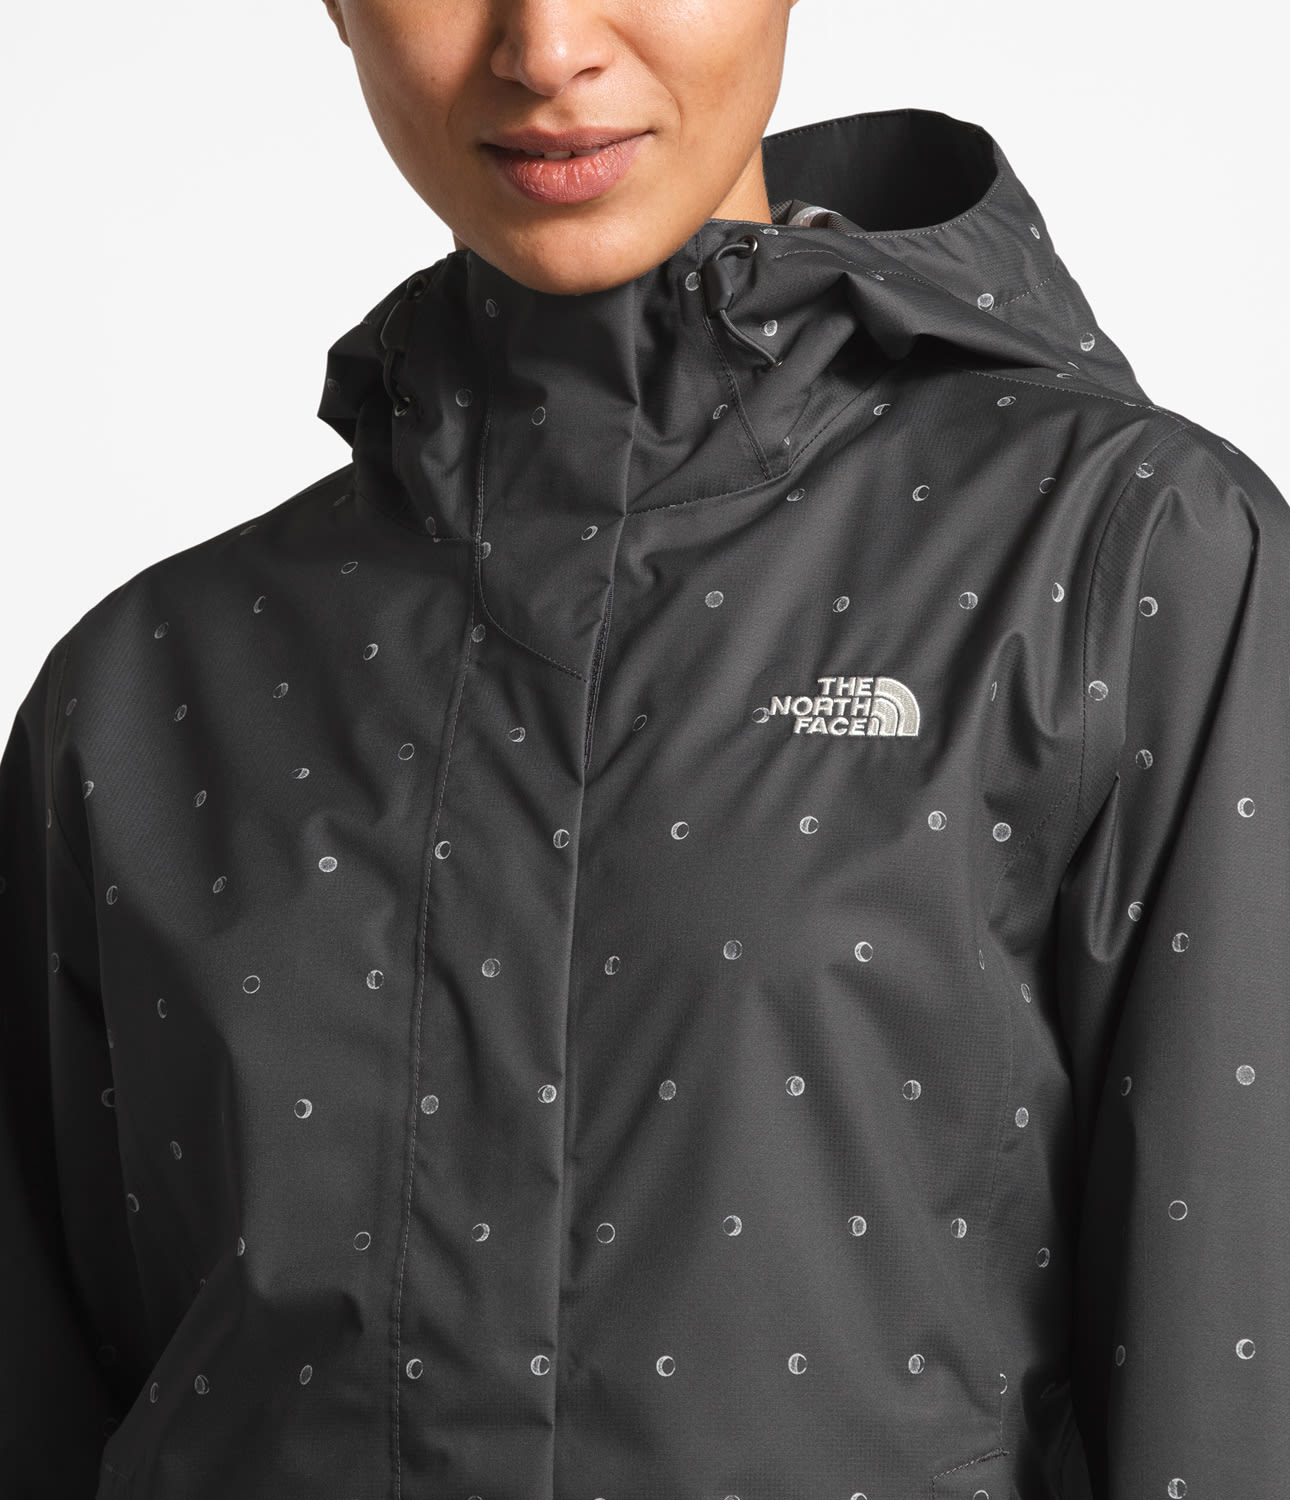 961f8c32f The North Face Print Venture DWR Jacket - Womens 2019